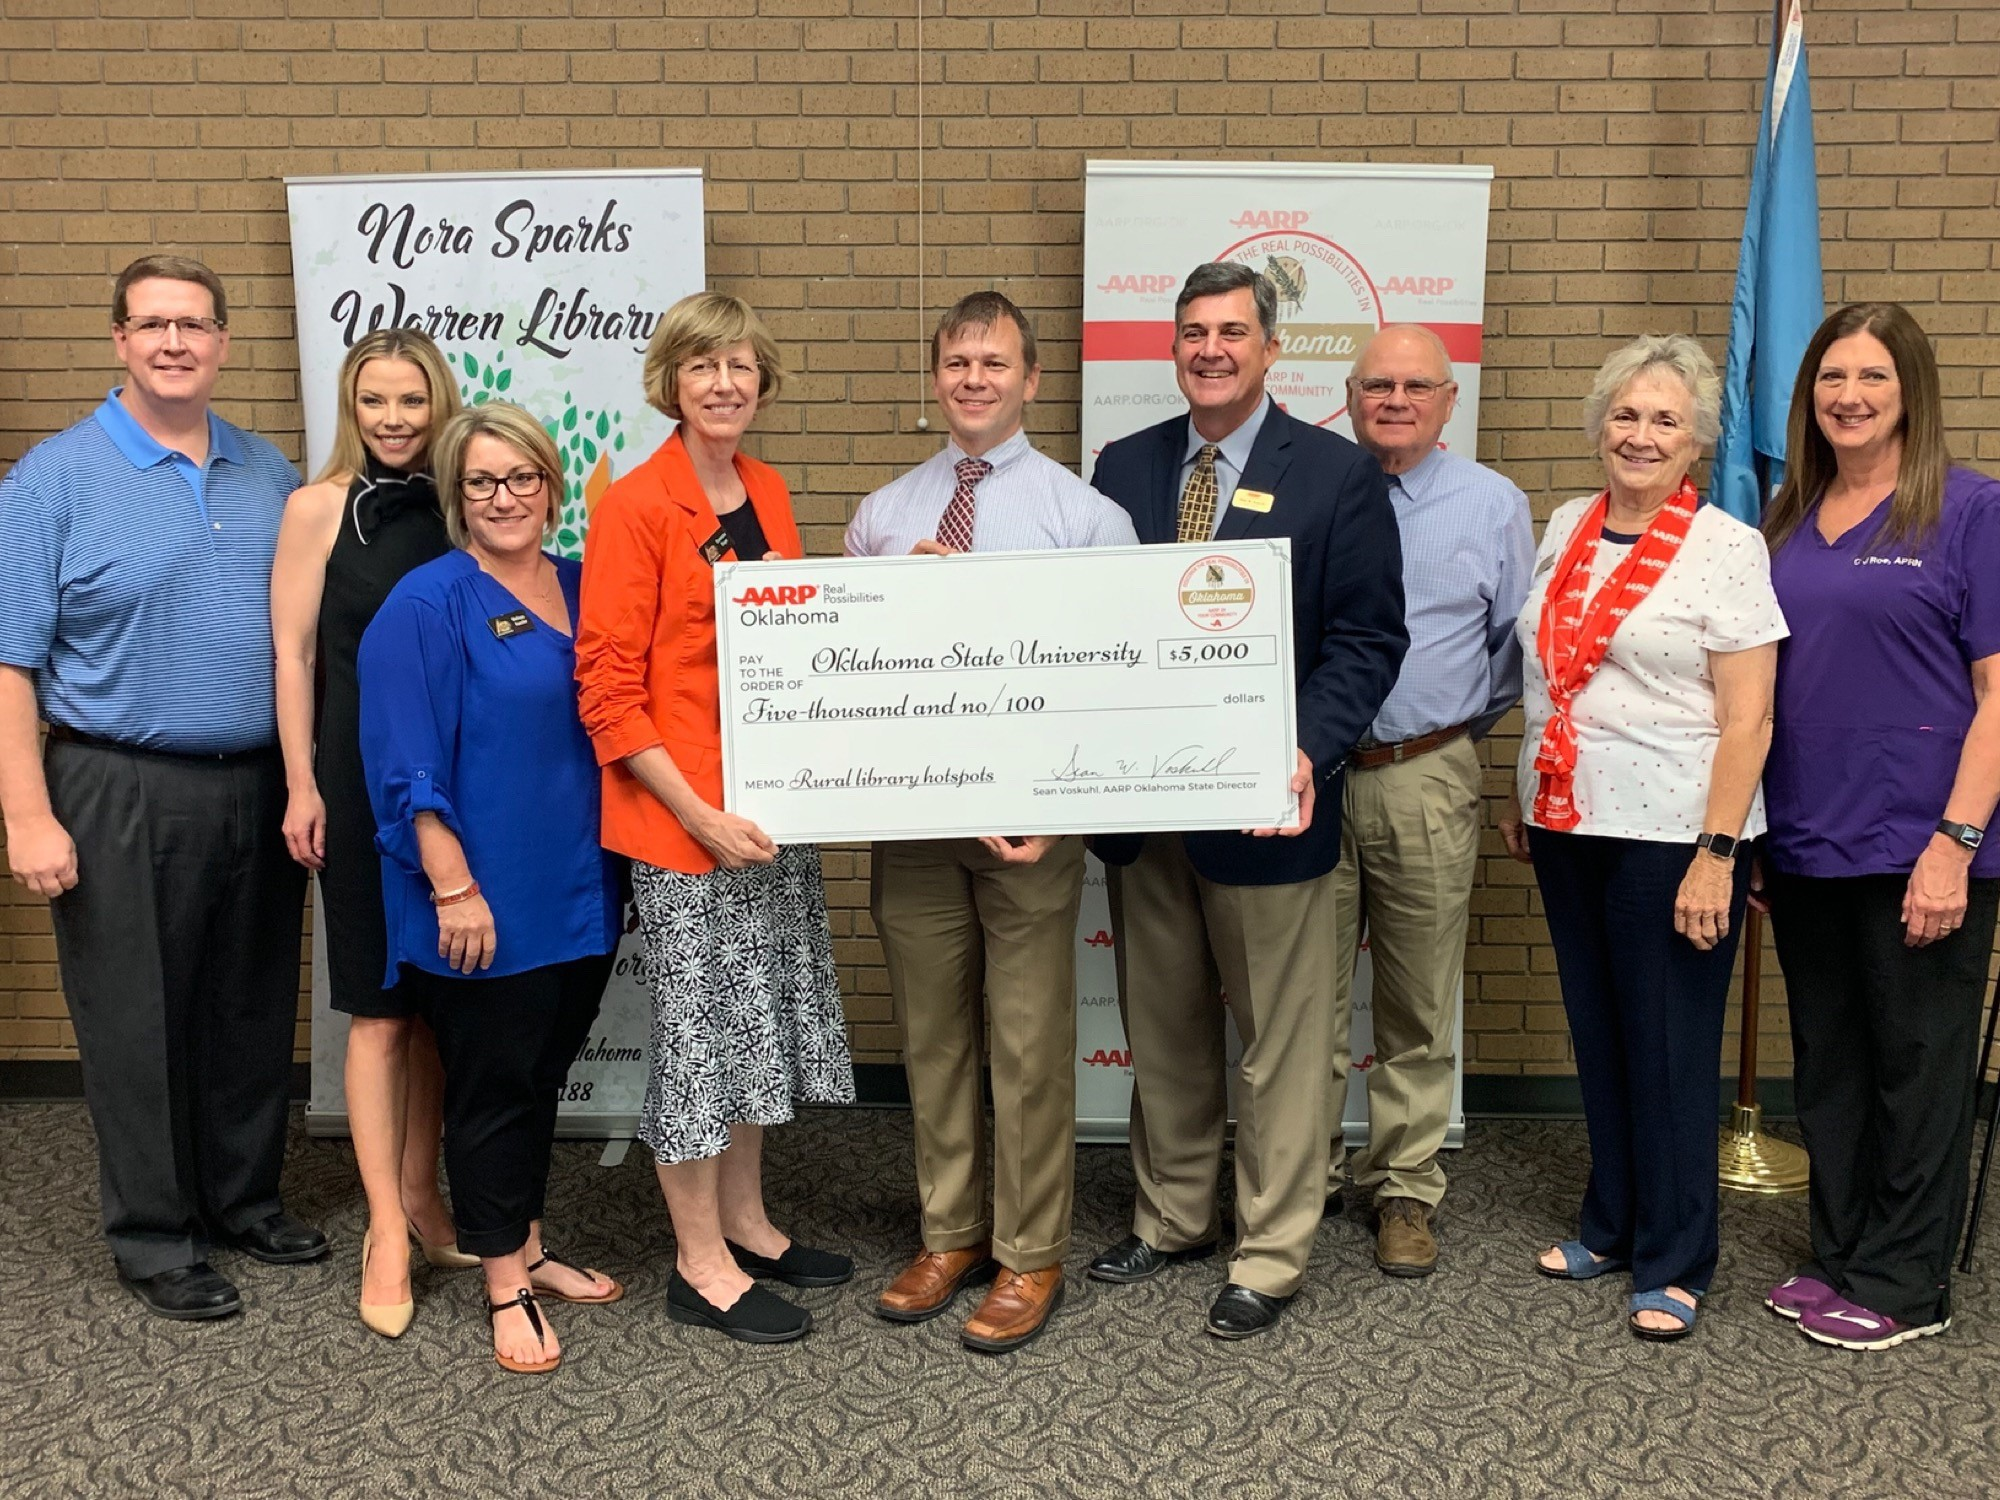 AARP Oklahoma Awards Oklahoma State University $5,000 Grant for Rural Broadband Hotspot Library Program